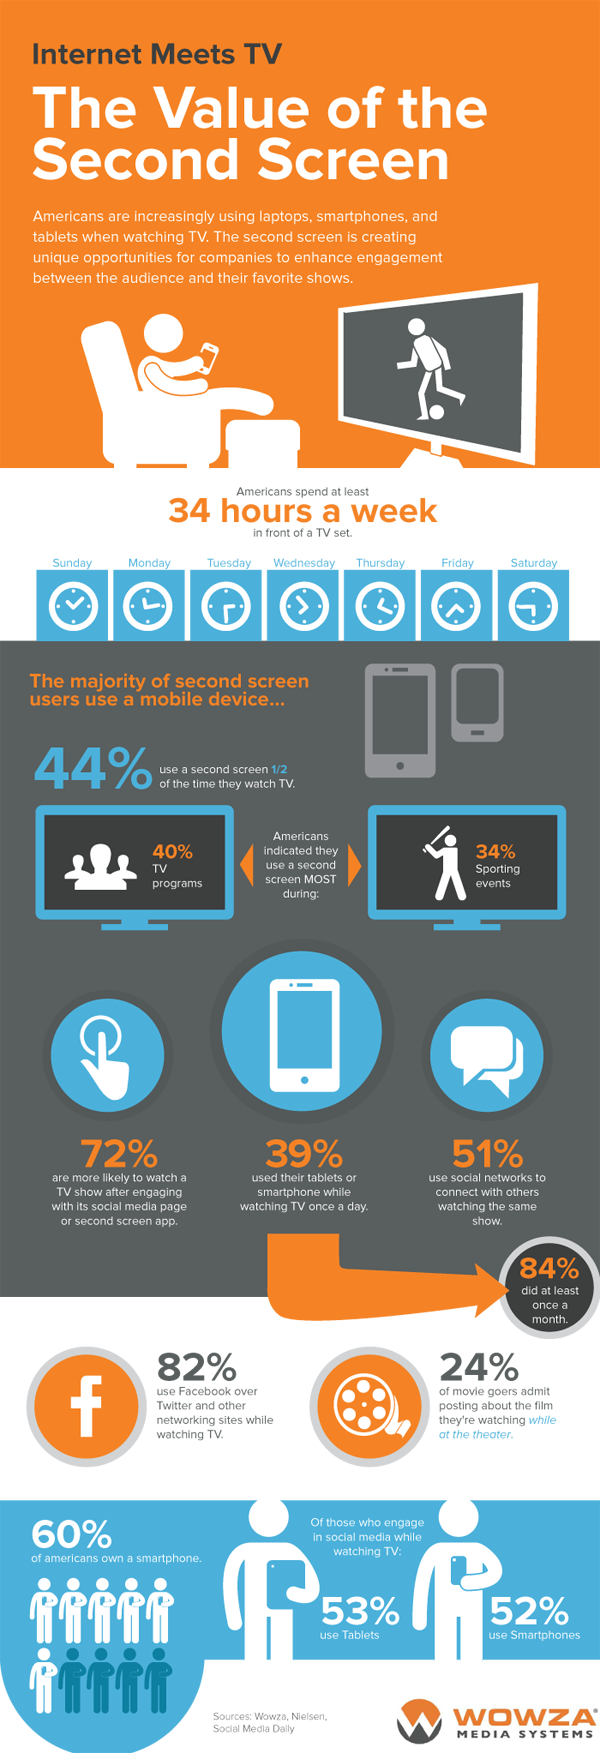 The Value of Second Screen #infographic #Resource Center #Media #infographics #Media Systems #Internet #Infographic